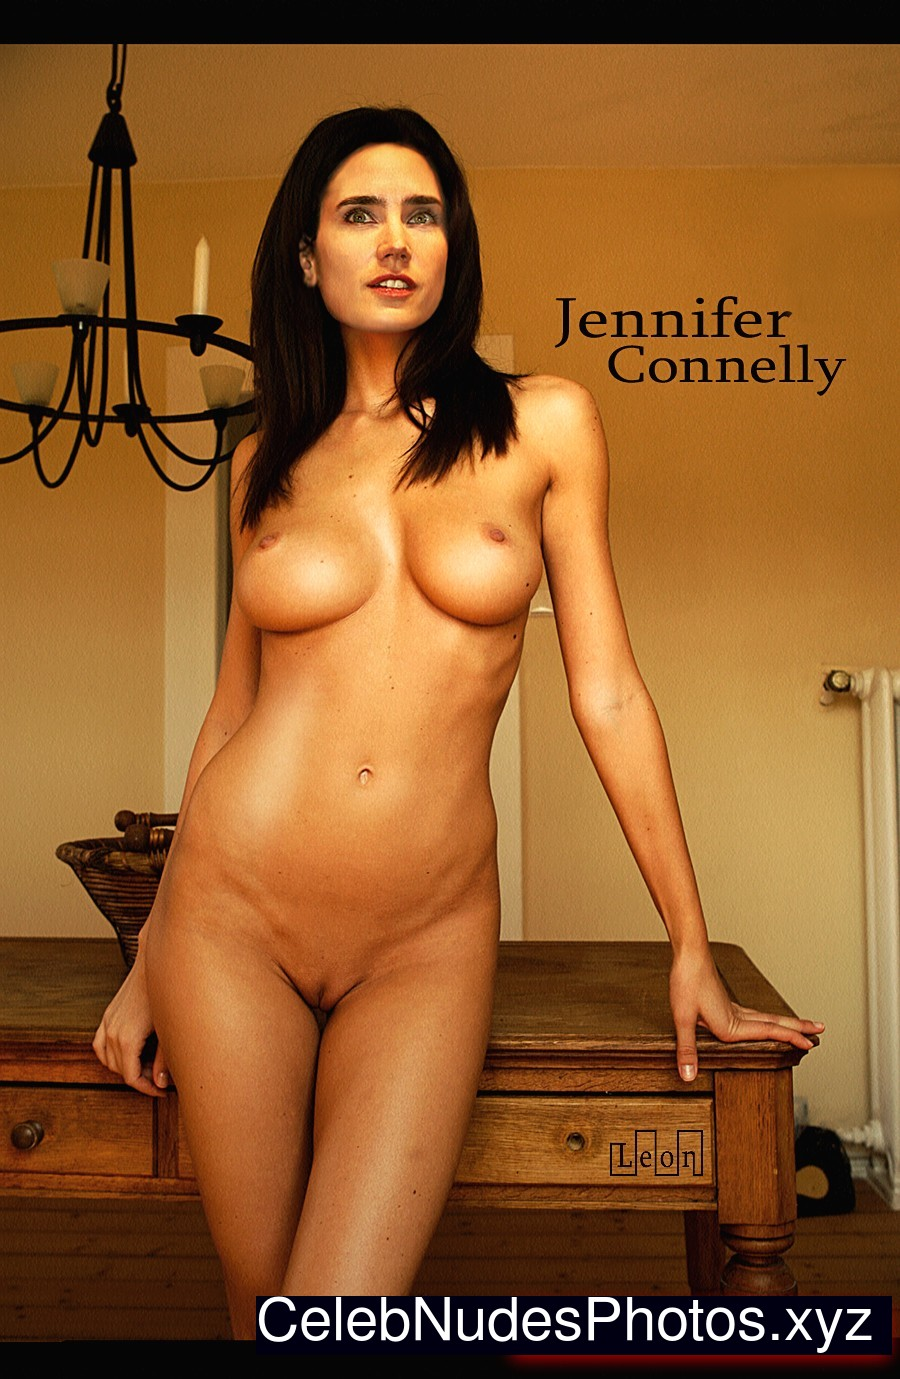 jenifer connelly fake nude